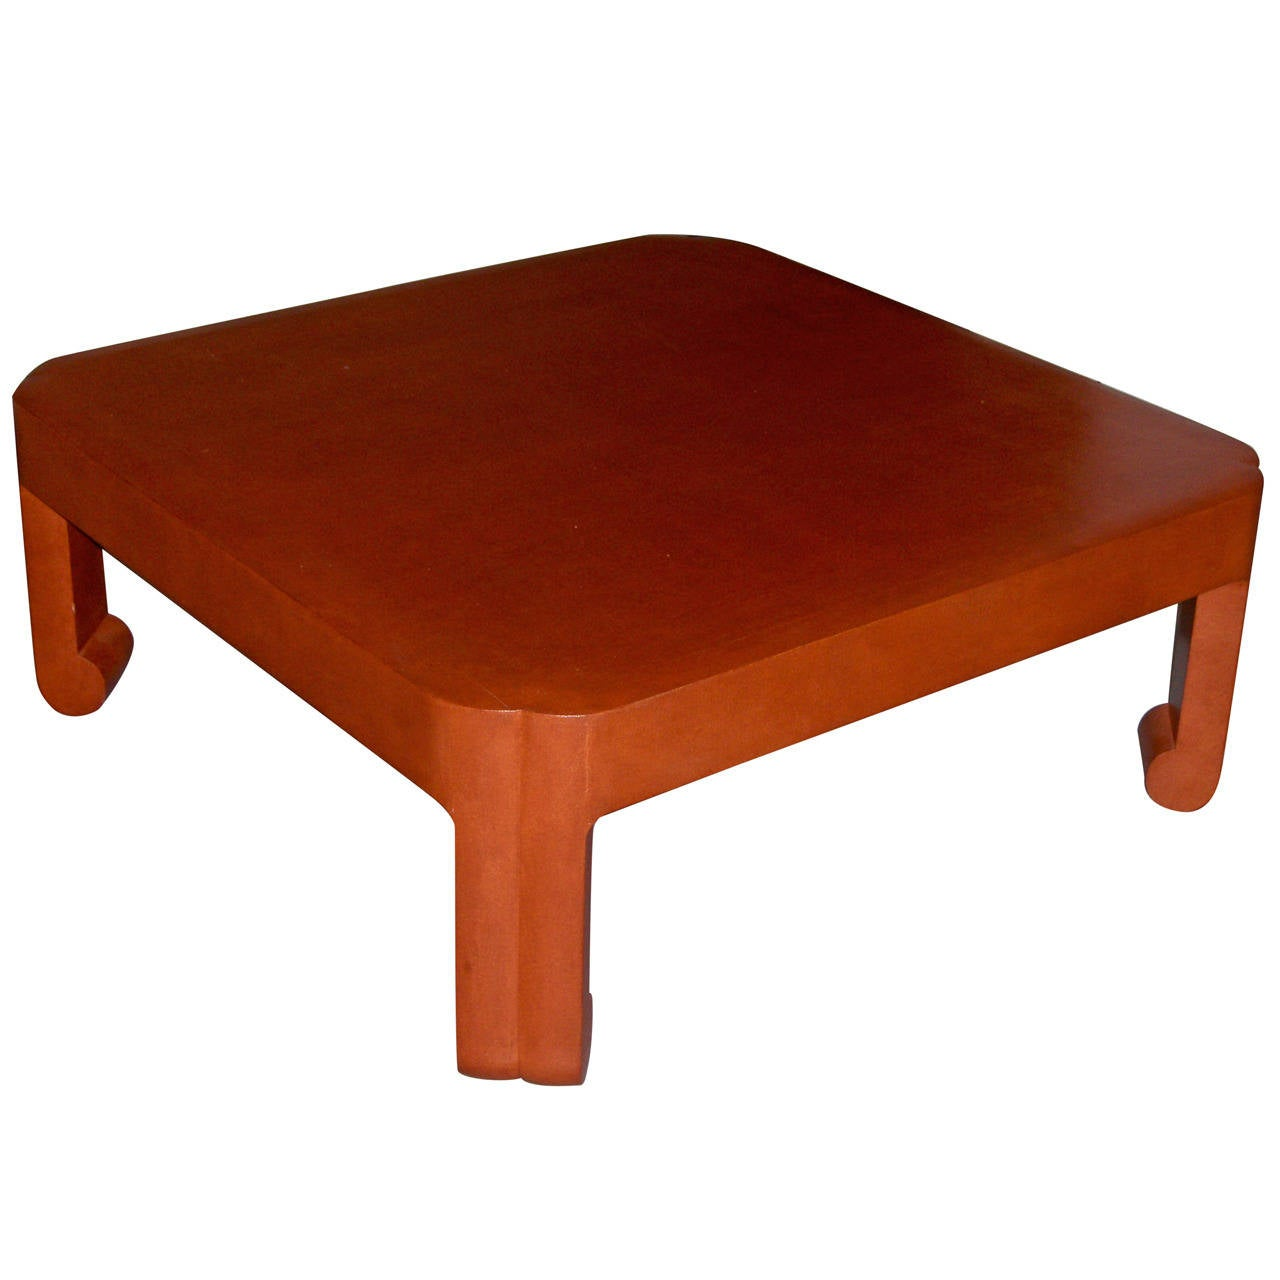 Custom linen wrapped low table by mark hampton for sale at for Markup table